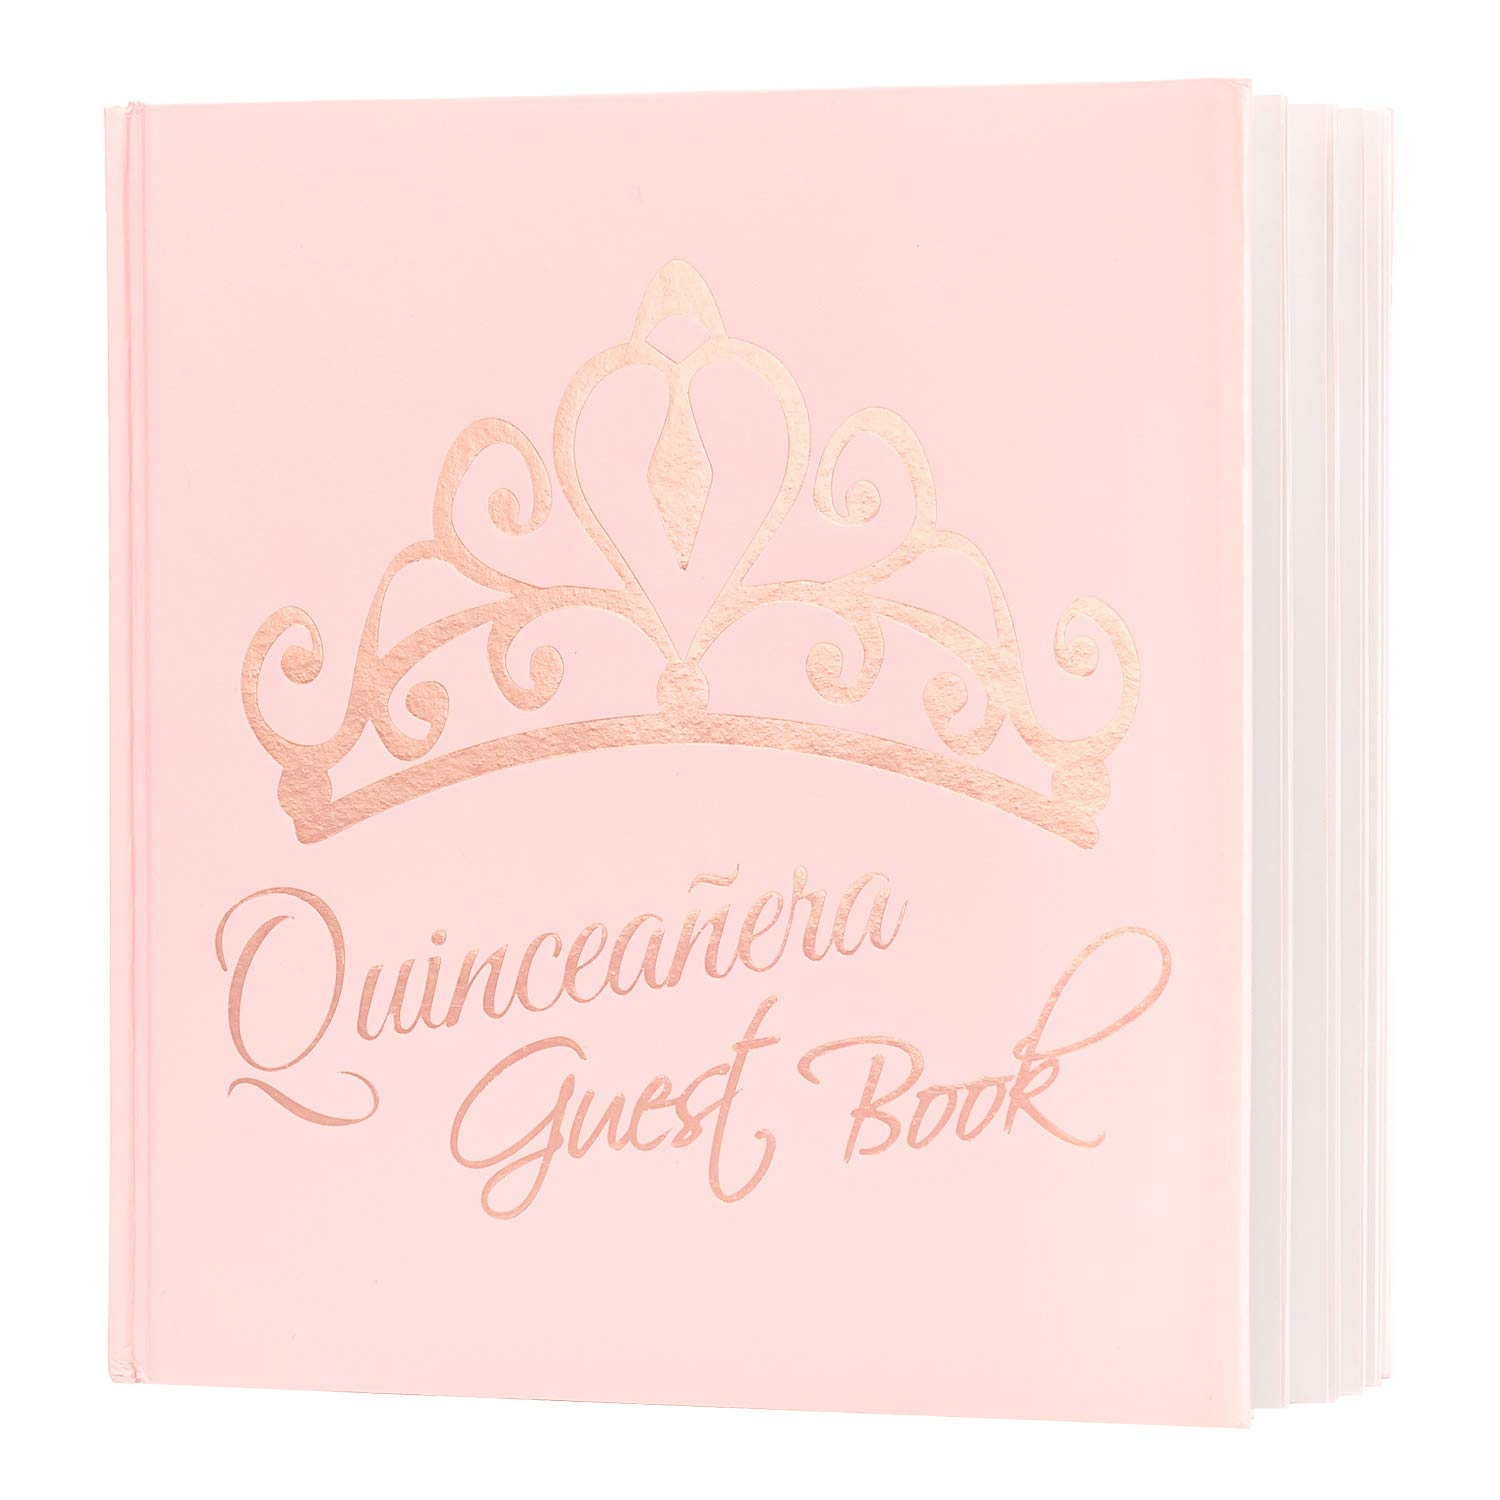 Calculs Polaroid Quinceanera Guest Book 8.5'' Square 15th Birthday Guest Registry Books, Pink Cover, Rose Gold Foil Stamping, Blank White Pages by Calculs